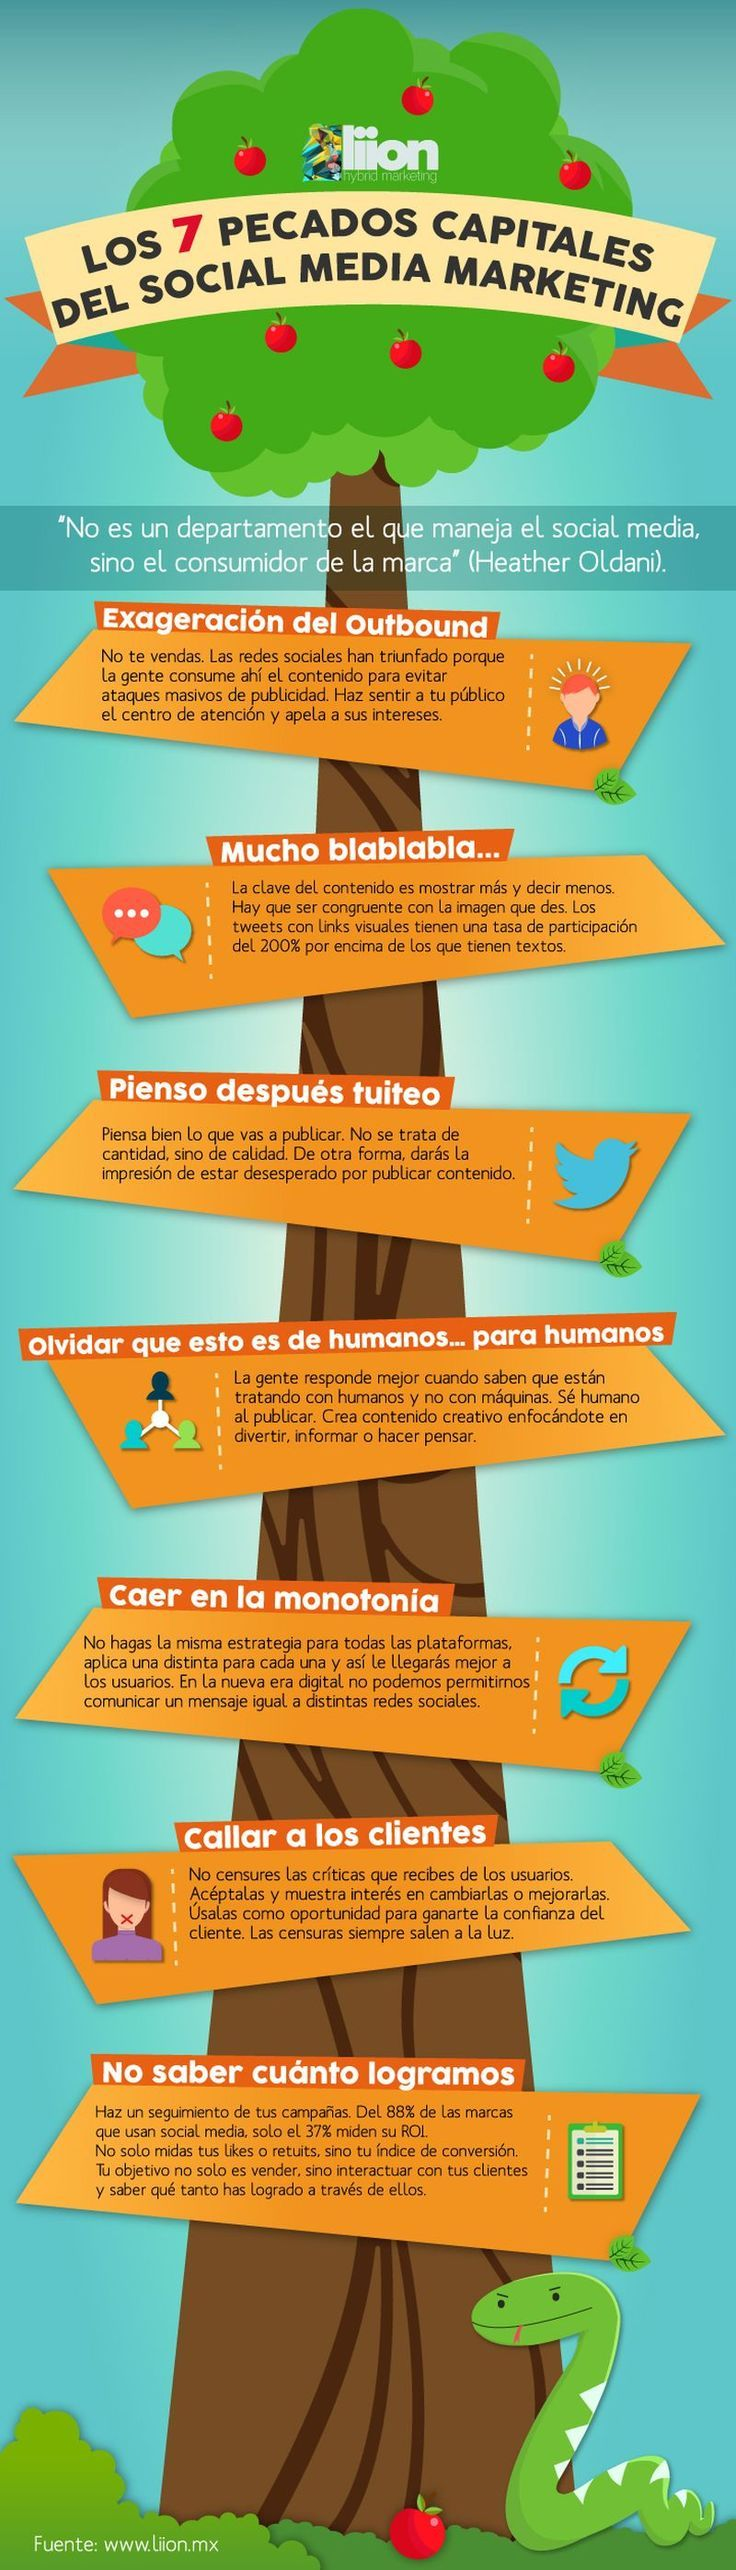 Los 7 pecados capitales del Social Media Marketing. Infografía en español. #CommunityManager www.rubendelaosa.com